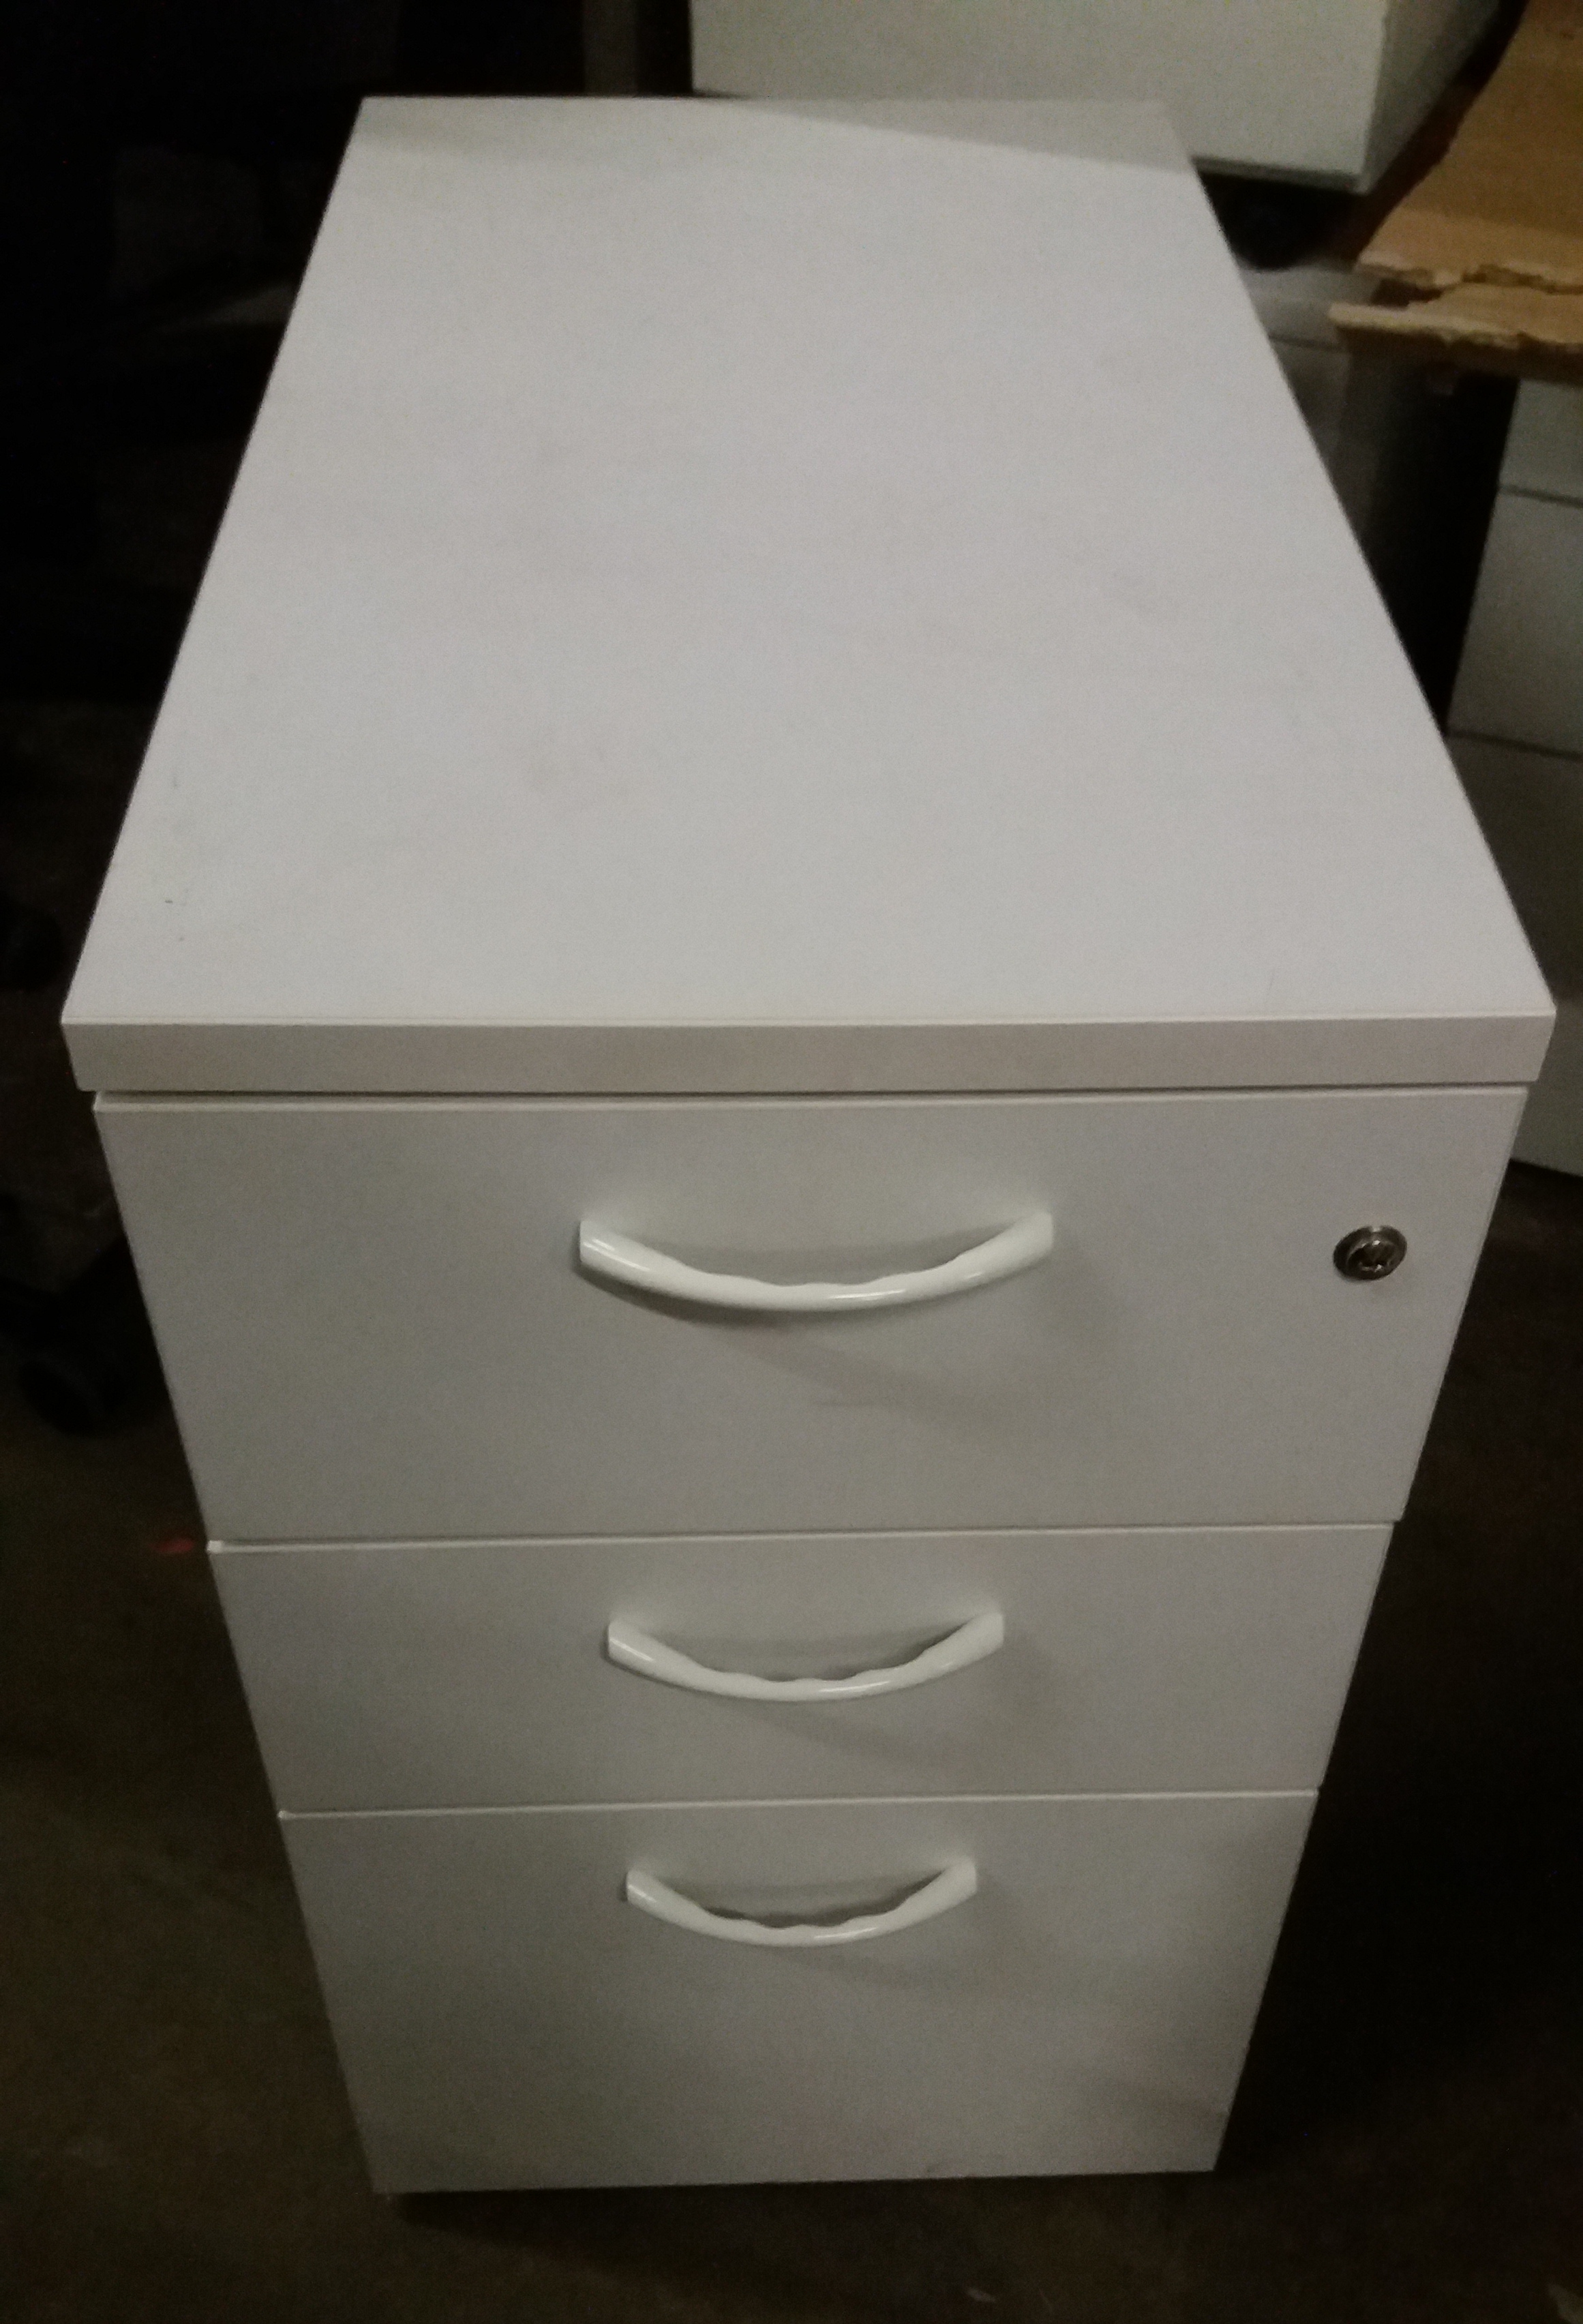 Lot 11 - 6 Person Office Work Station with 6 x 2 drawer under desk filing cabinets (dismantled)